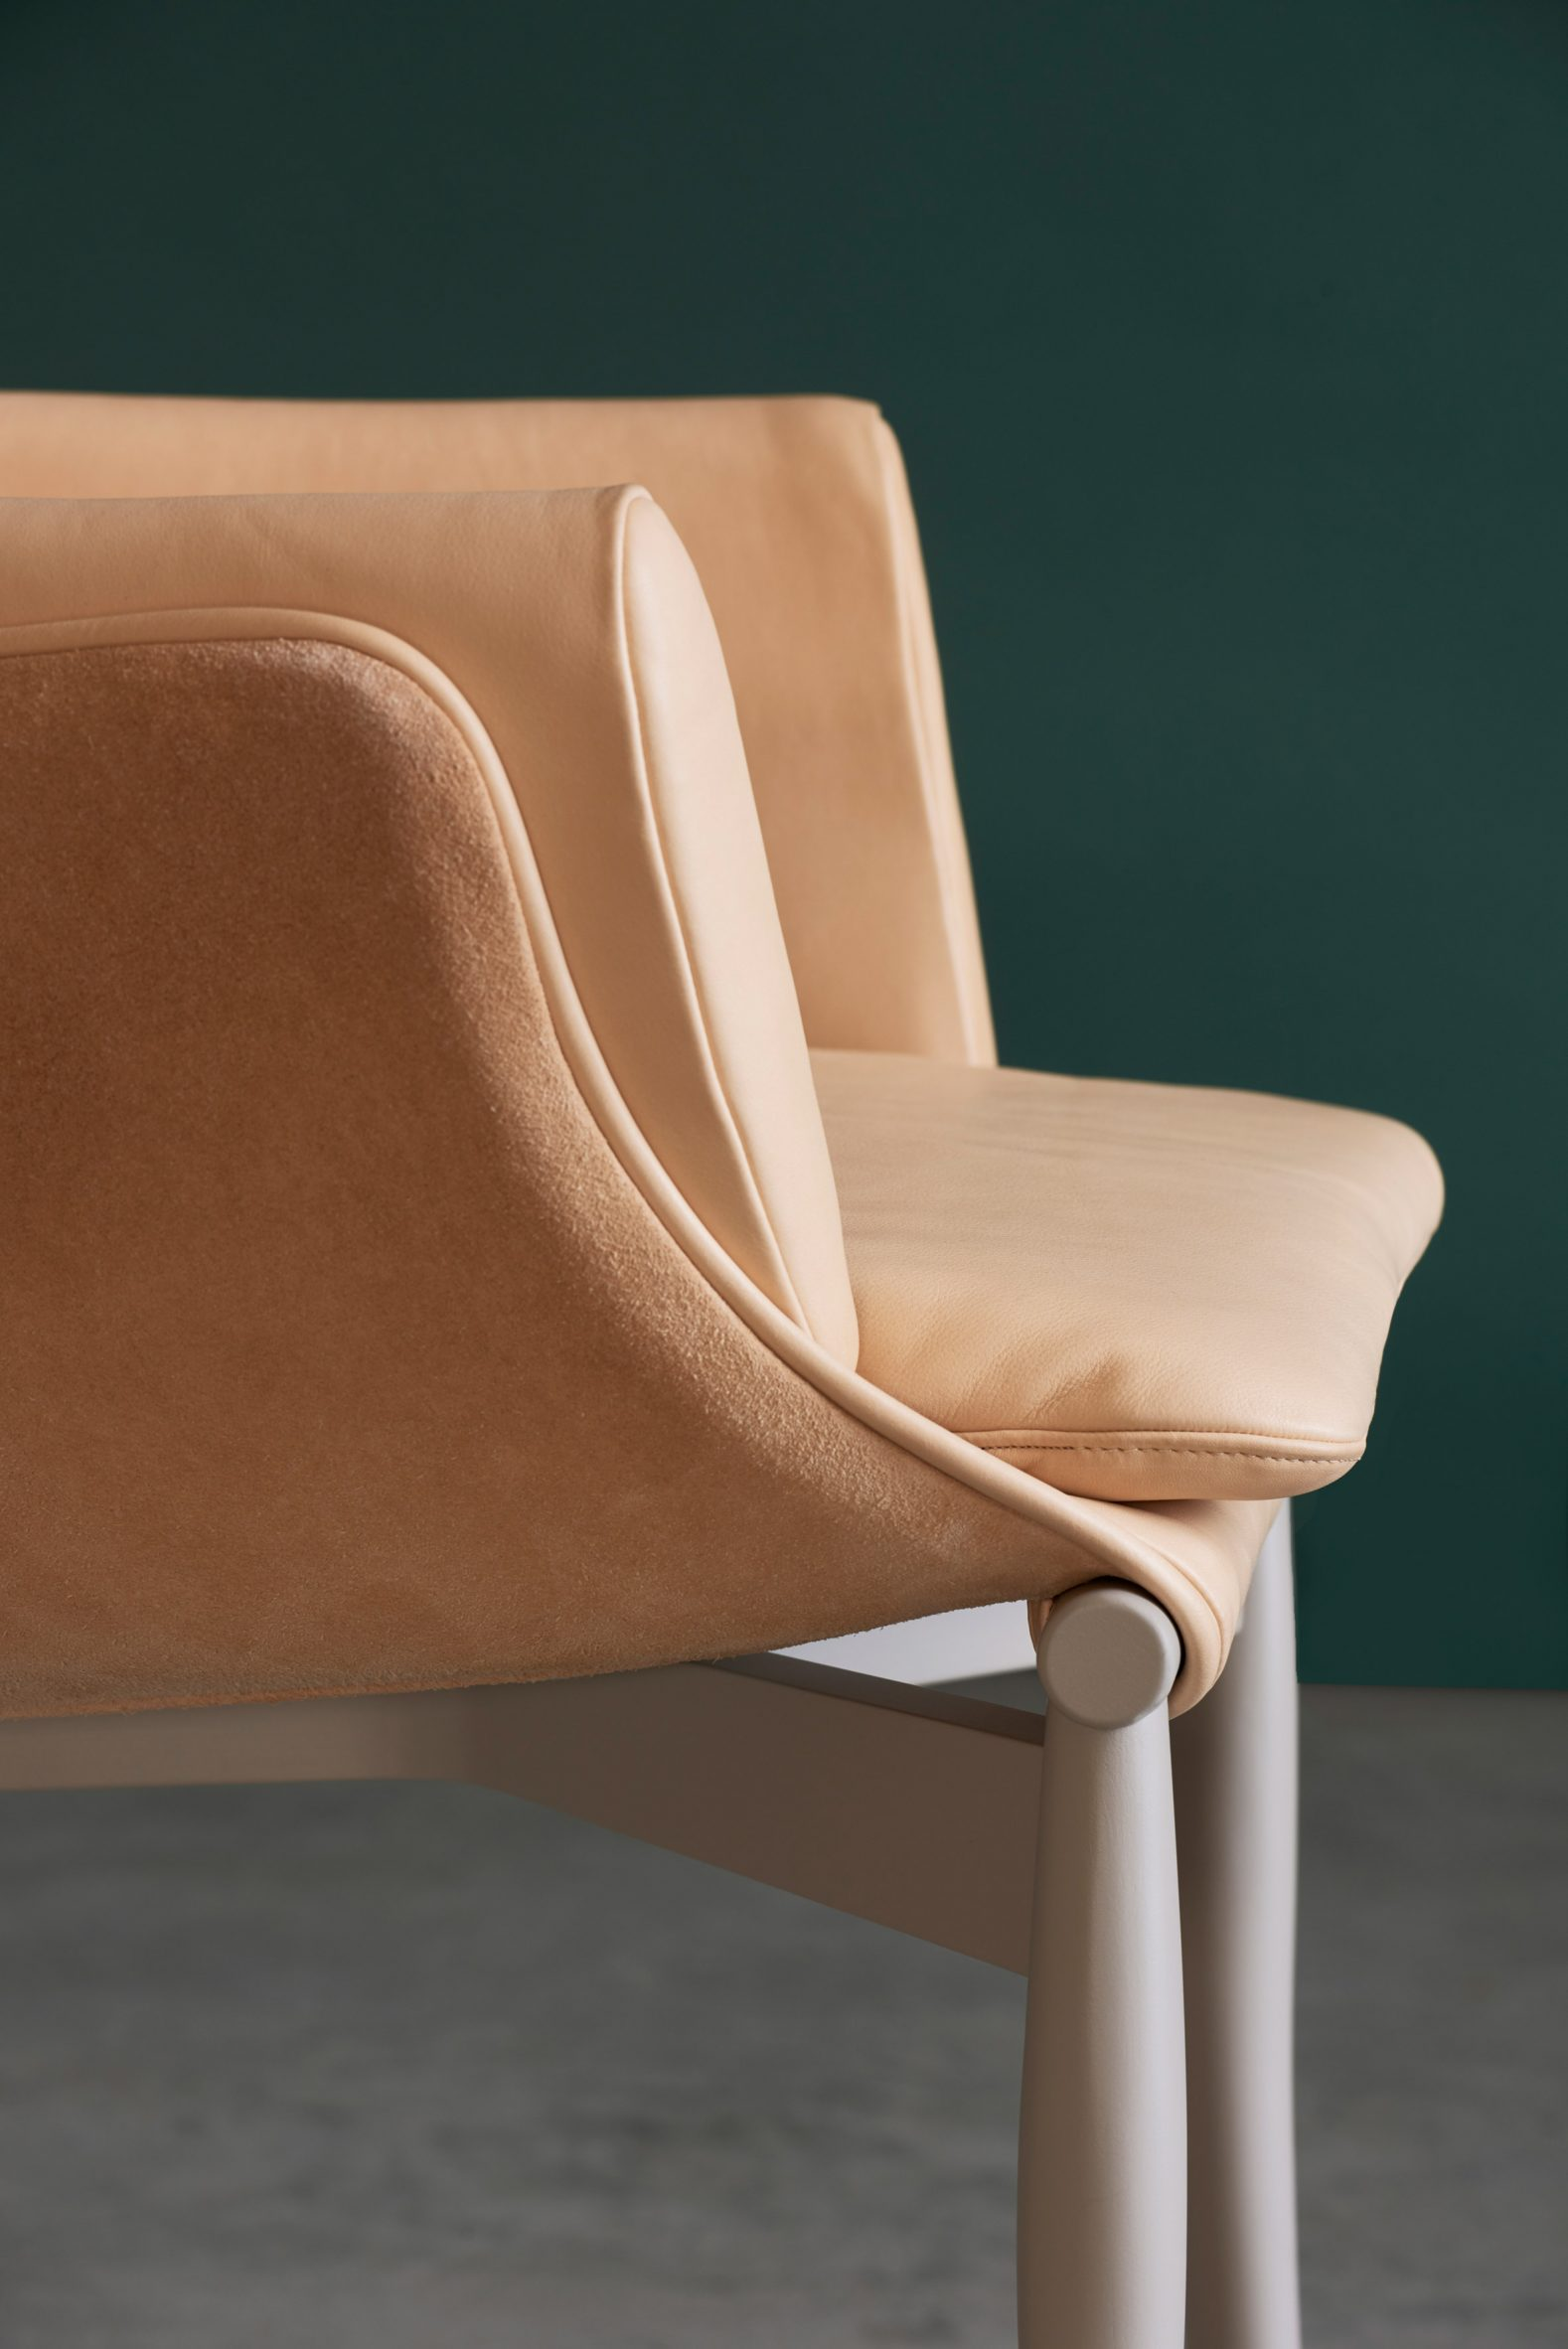 A detailed photograph of a chair